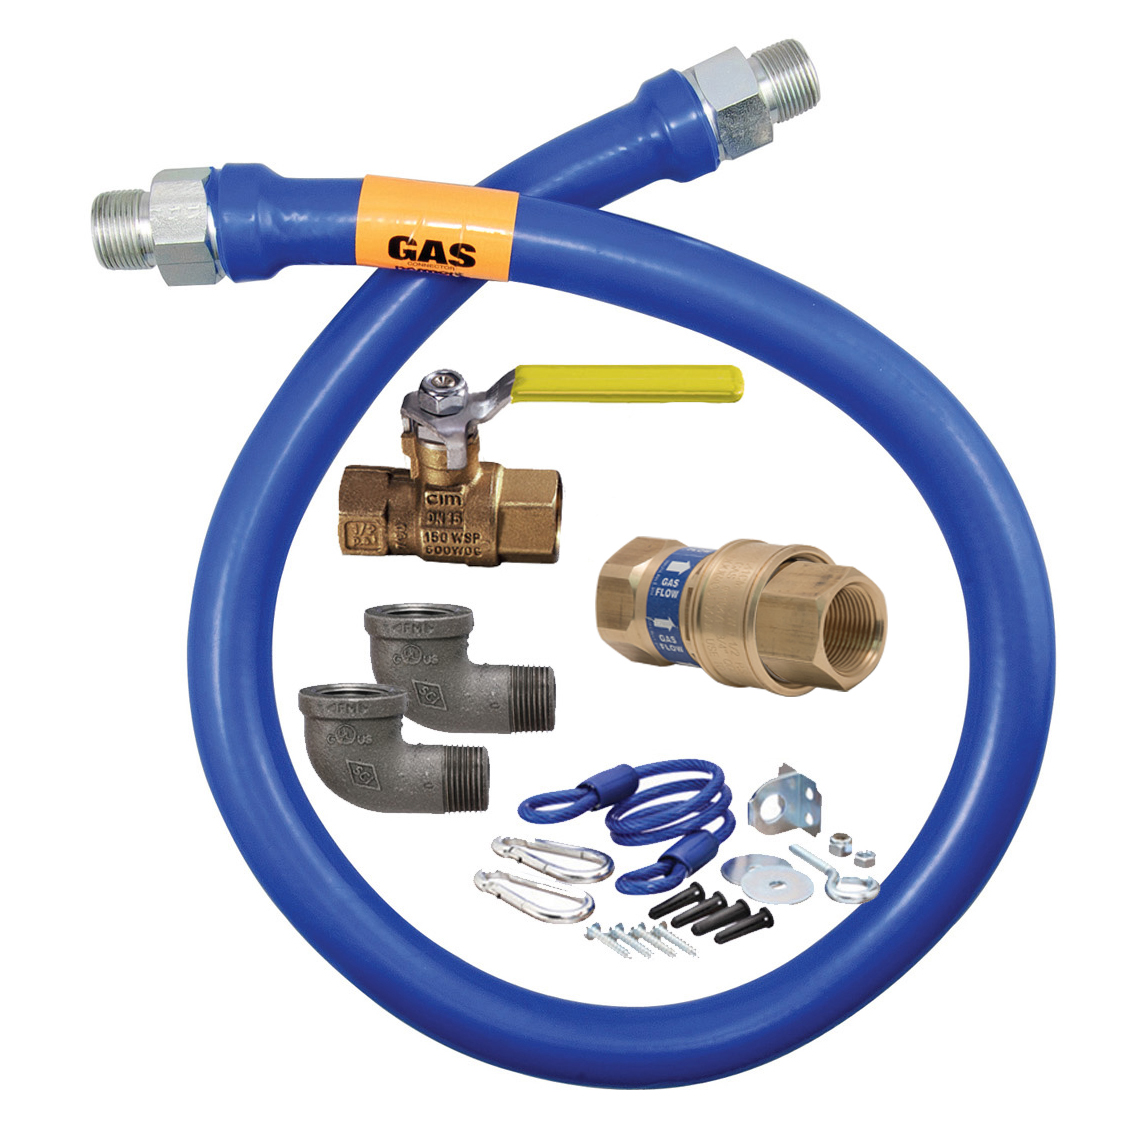 Dormont Manufacturing 1675KITBS36 gas connector hose kit